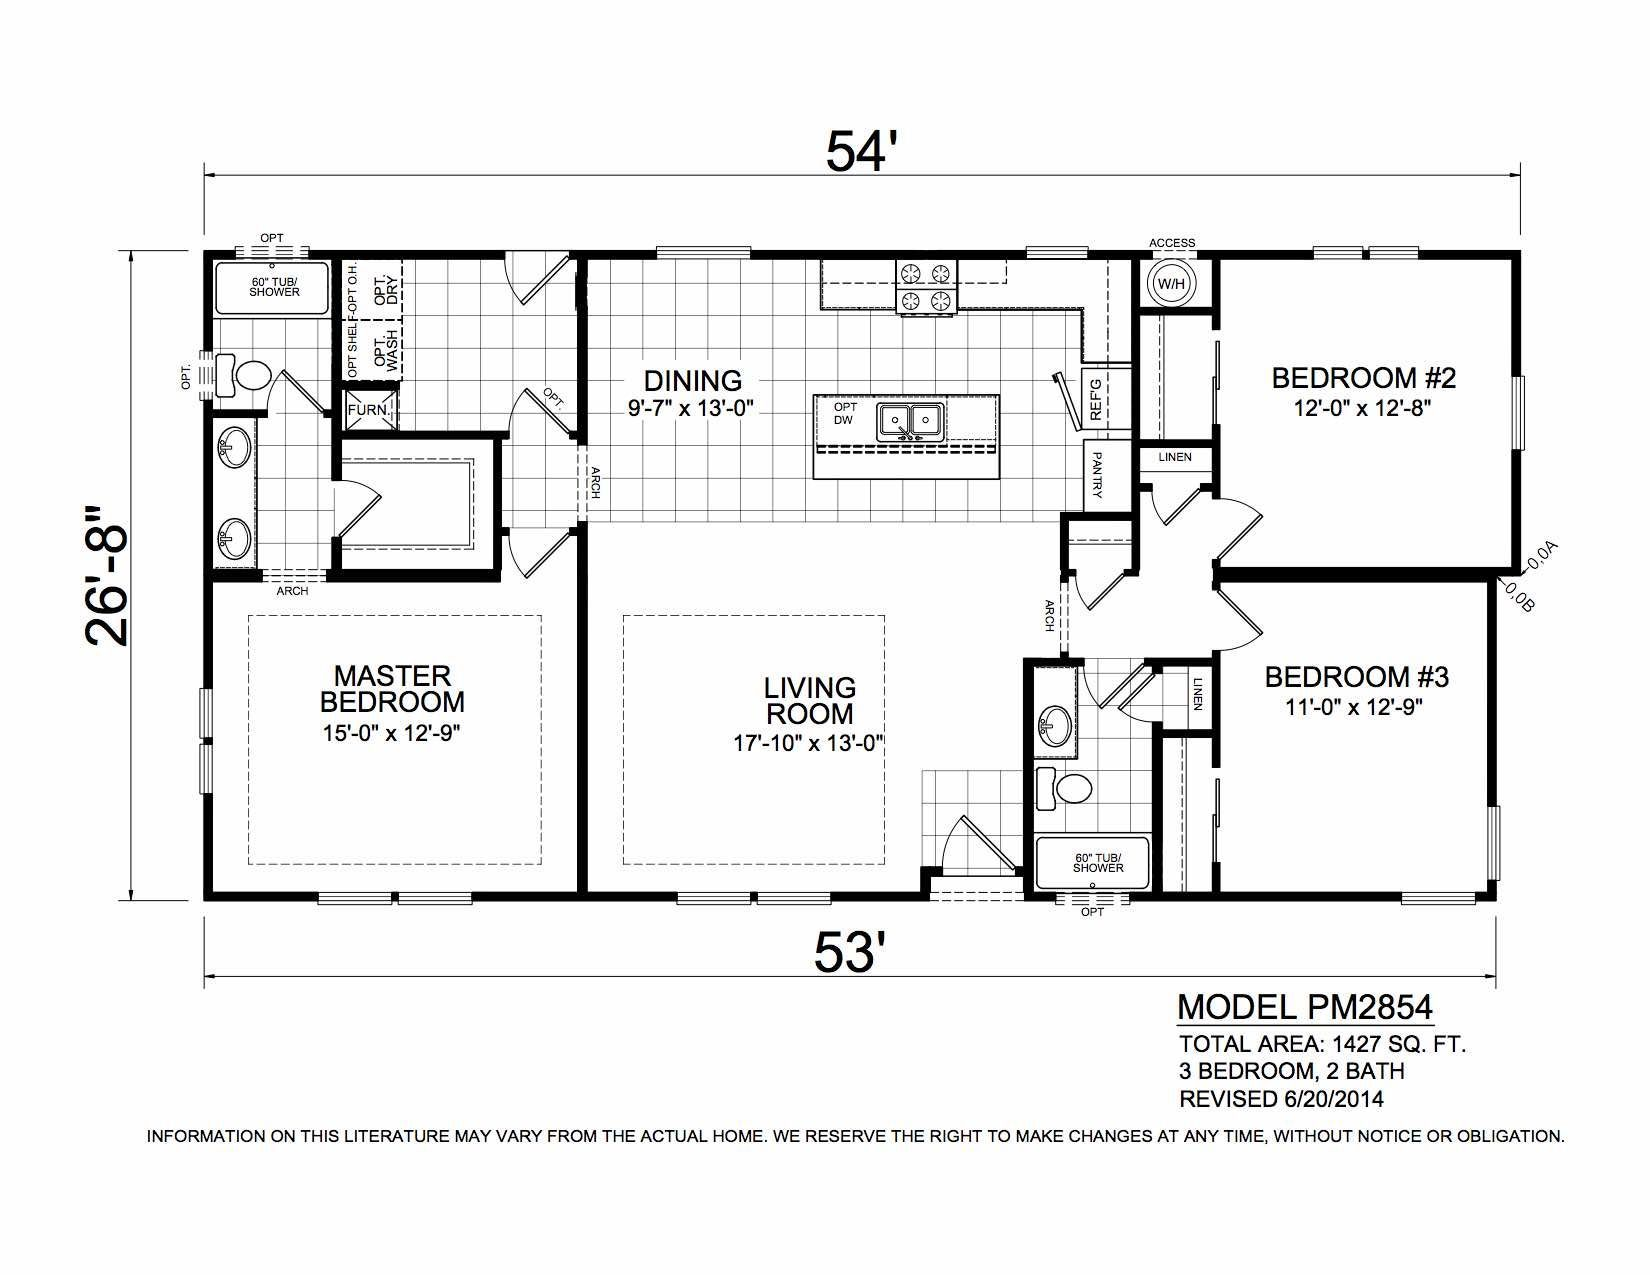 Williamsburg Rectangle House Plans Small Affordable House Plans Small Modern House Plans